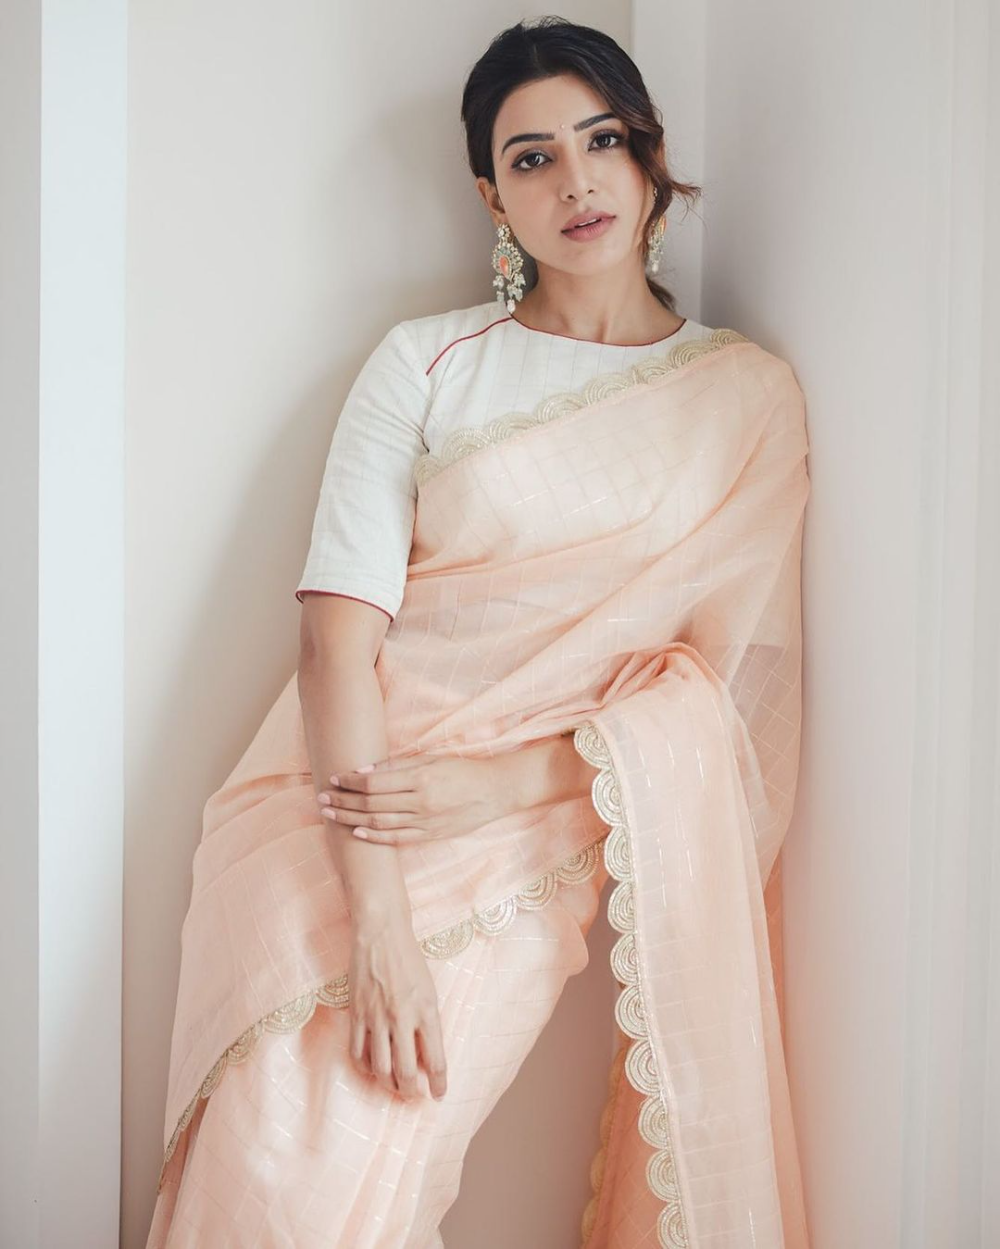 Samantha wears a pastel saree from Saaki for a magazine photoshoot